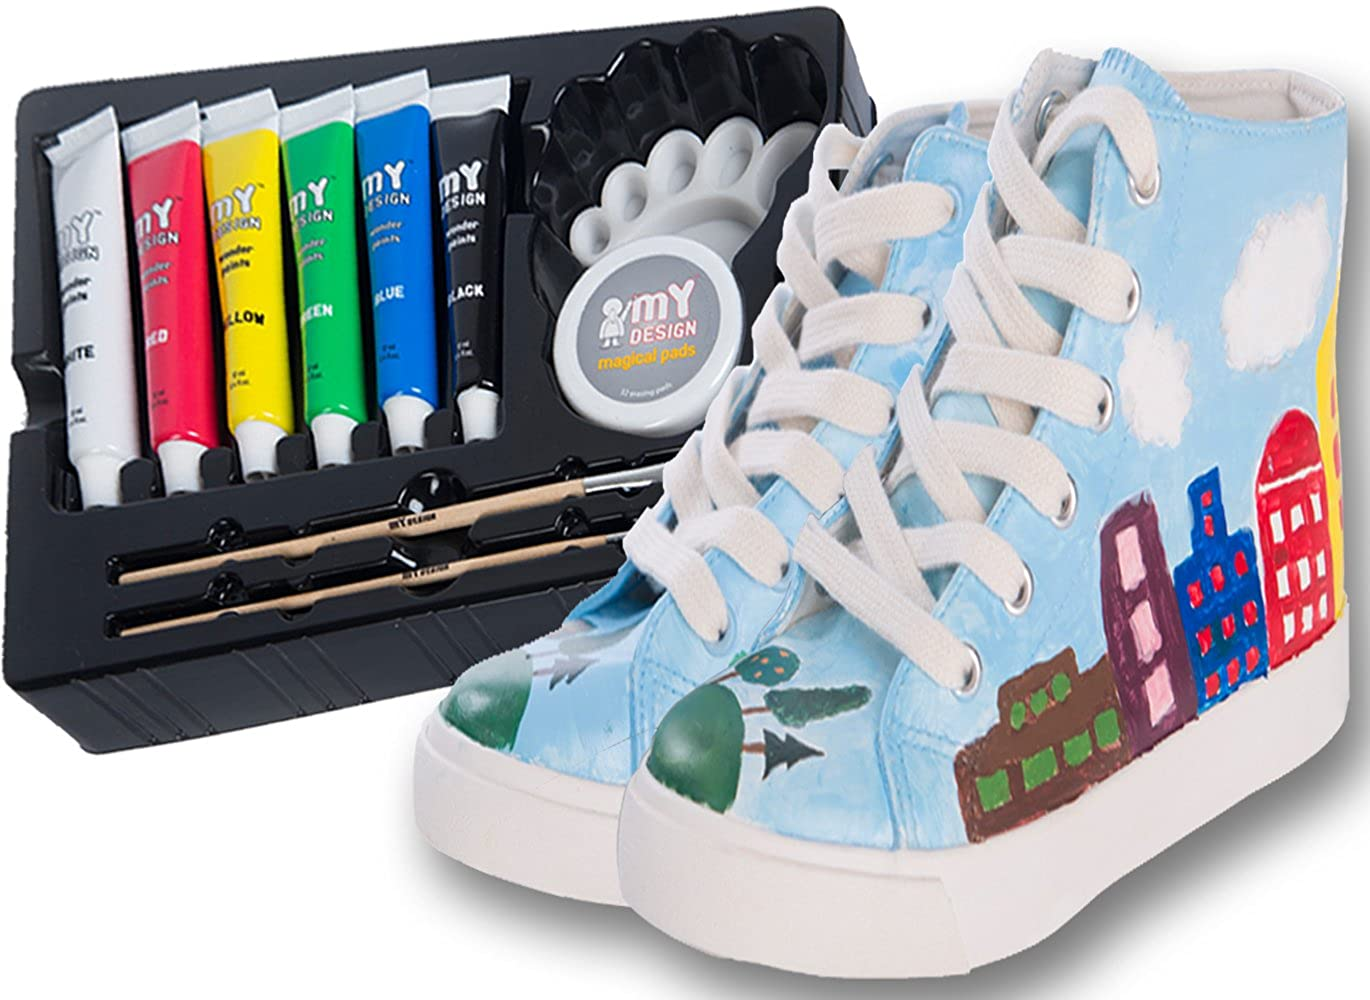 mY DESIGN Art Dye Tie Shoes Painting Kit, Craft Supplies for Kids